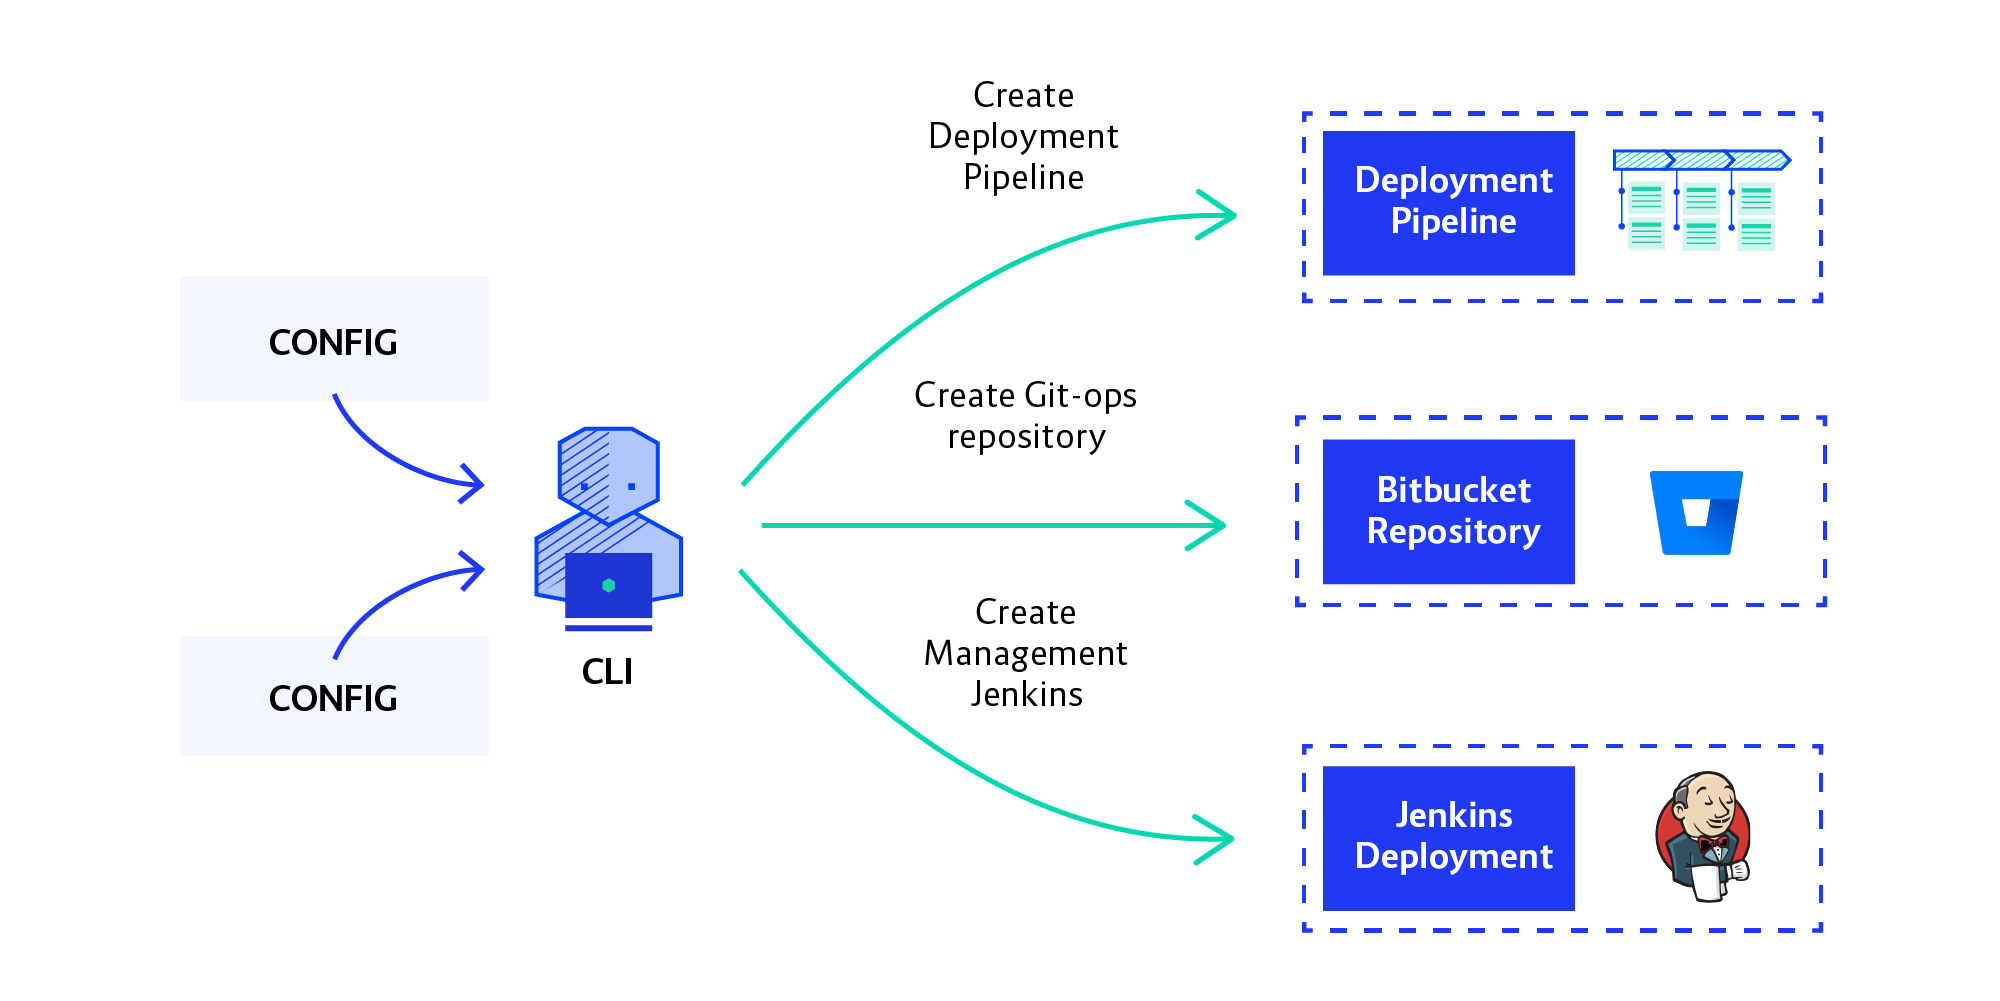 19-08-02_Building_large_scale_continuous_delivery_blog_post_diagram_config_Jenkins_bitbucket_Openshi